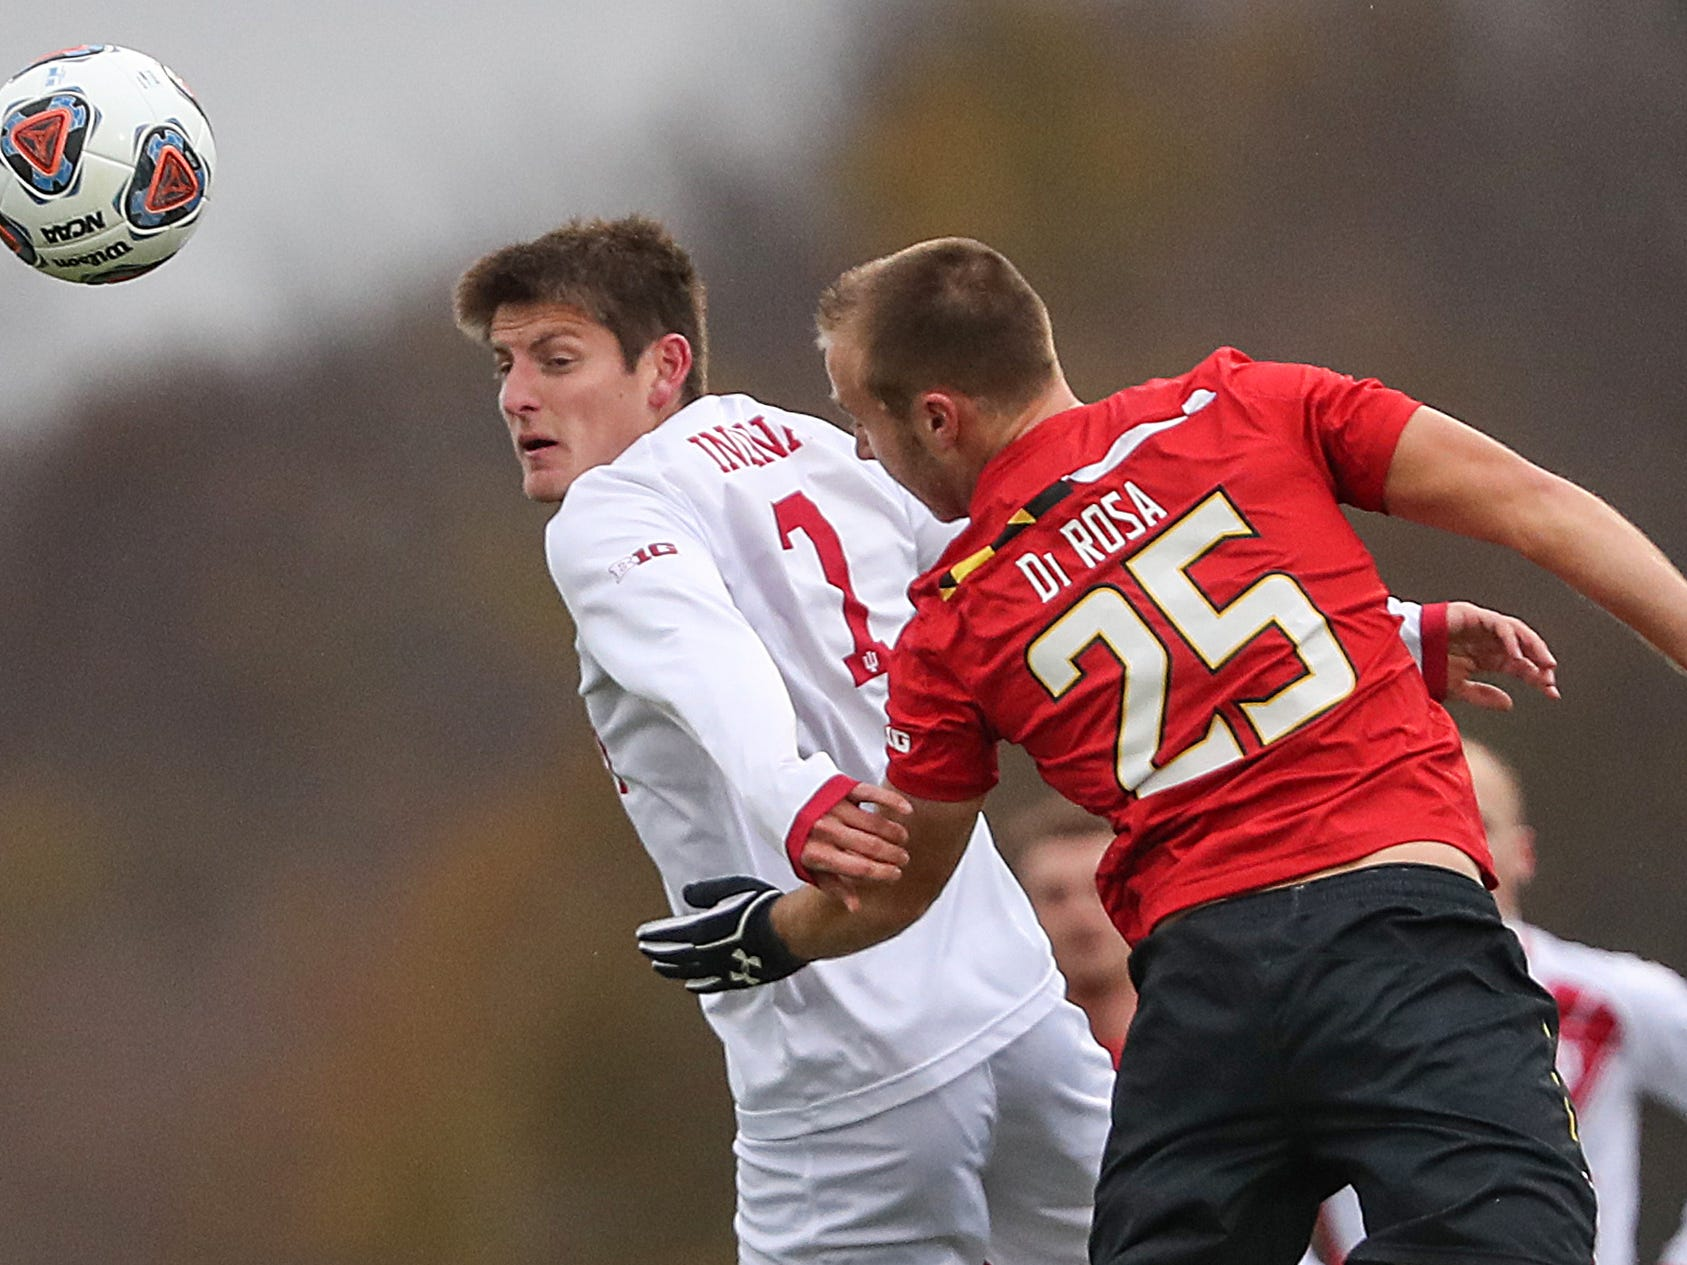 Indiana Hoosiers Trevor Swartz (7) and Maryland Terrapins defender Ben Di Rosa (25) go airborne for a header during the first half of Big Ten semifinals at Grand Park in Westfield, Ind., Friday, Nov. 9, 2018. Indiana and Maryland tied 1-1, with the Hoosiers advancing in penalty kicks, 4-3.